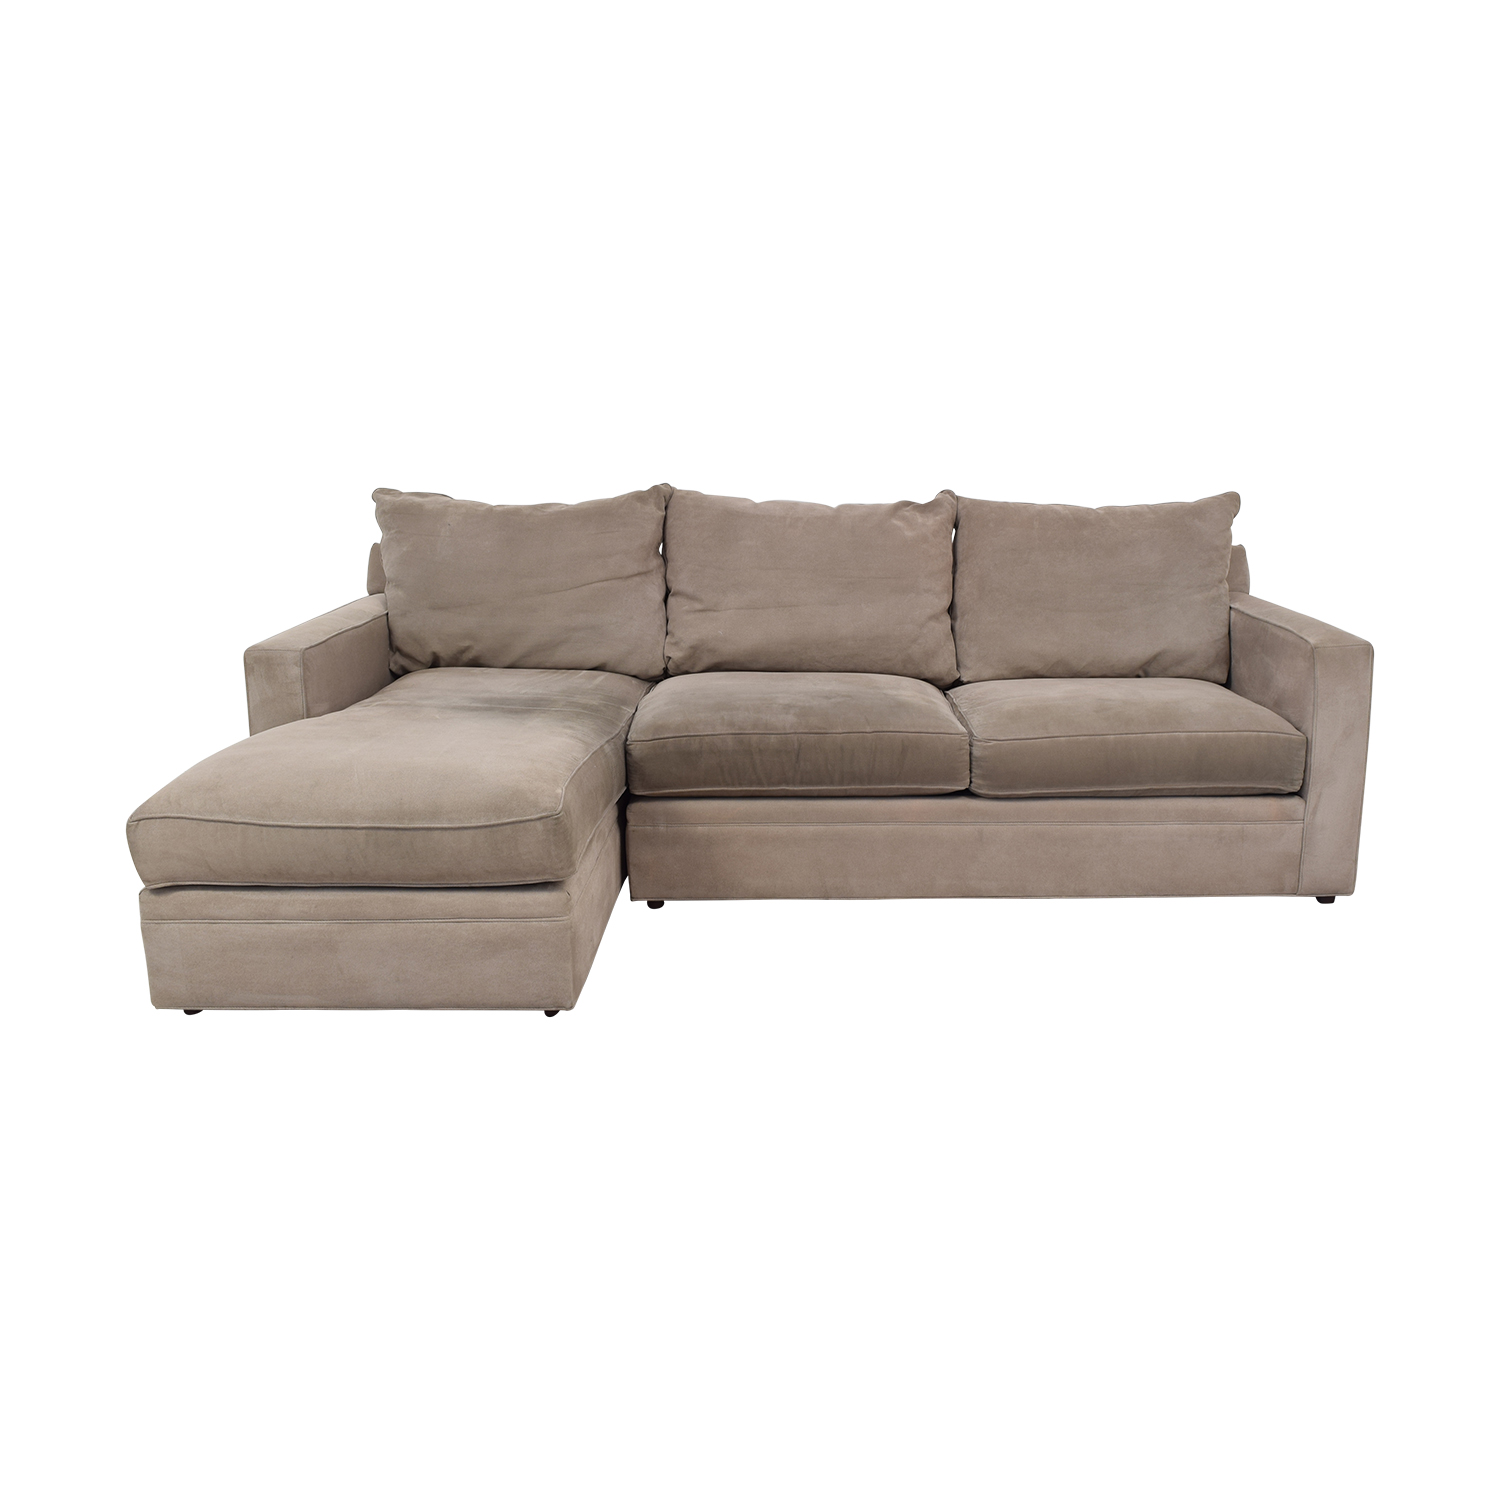 buy Room & Board Orson Sectional Couch Room & Board Sectionals